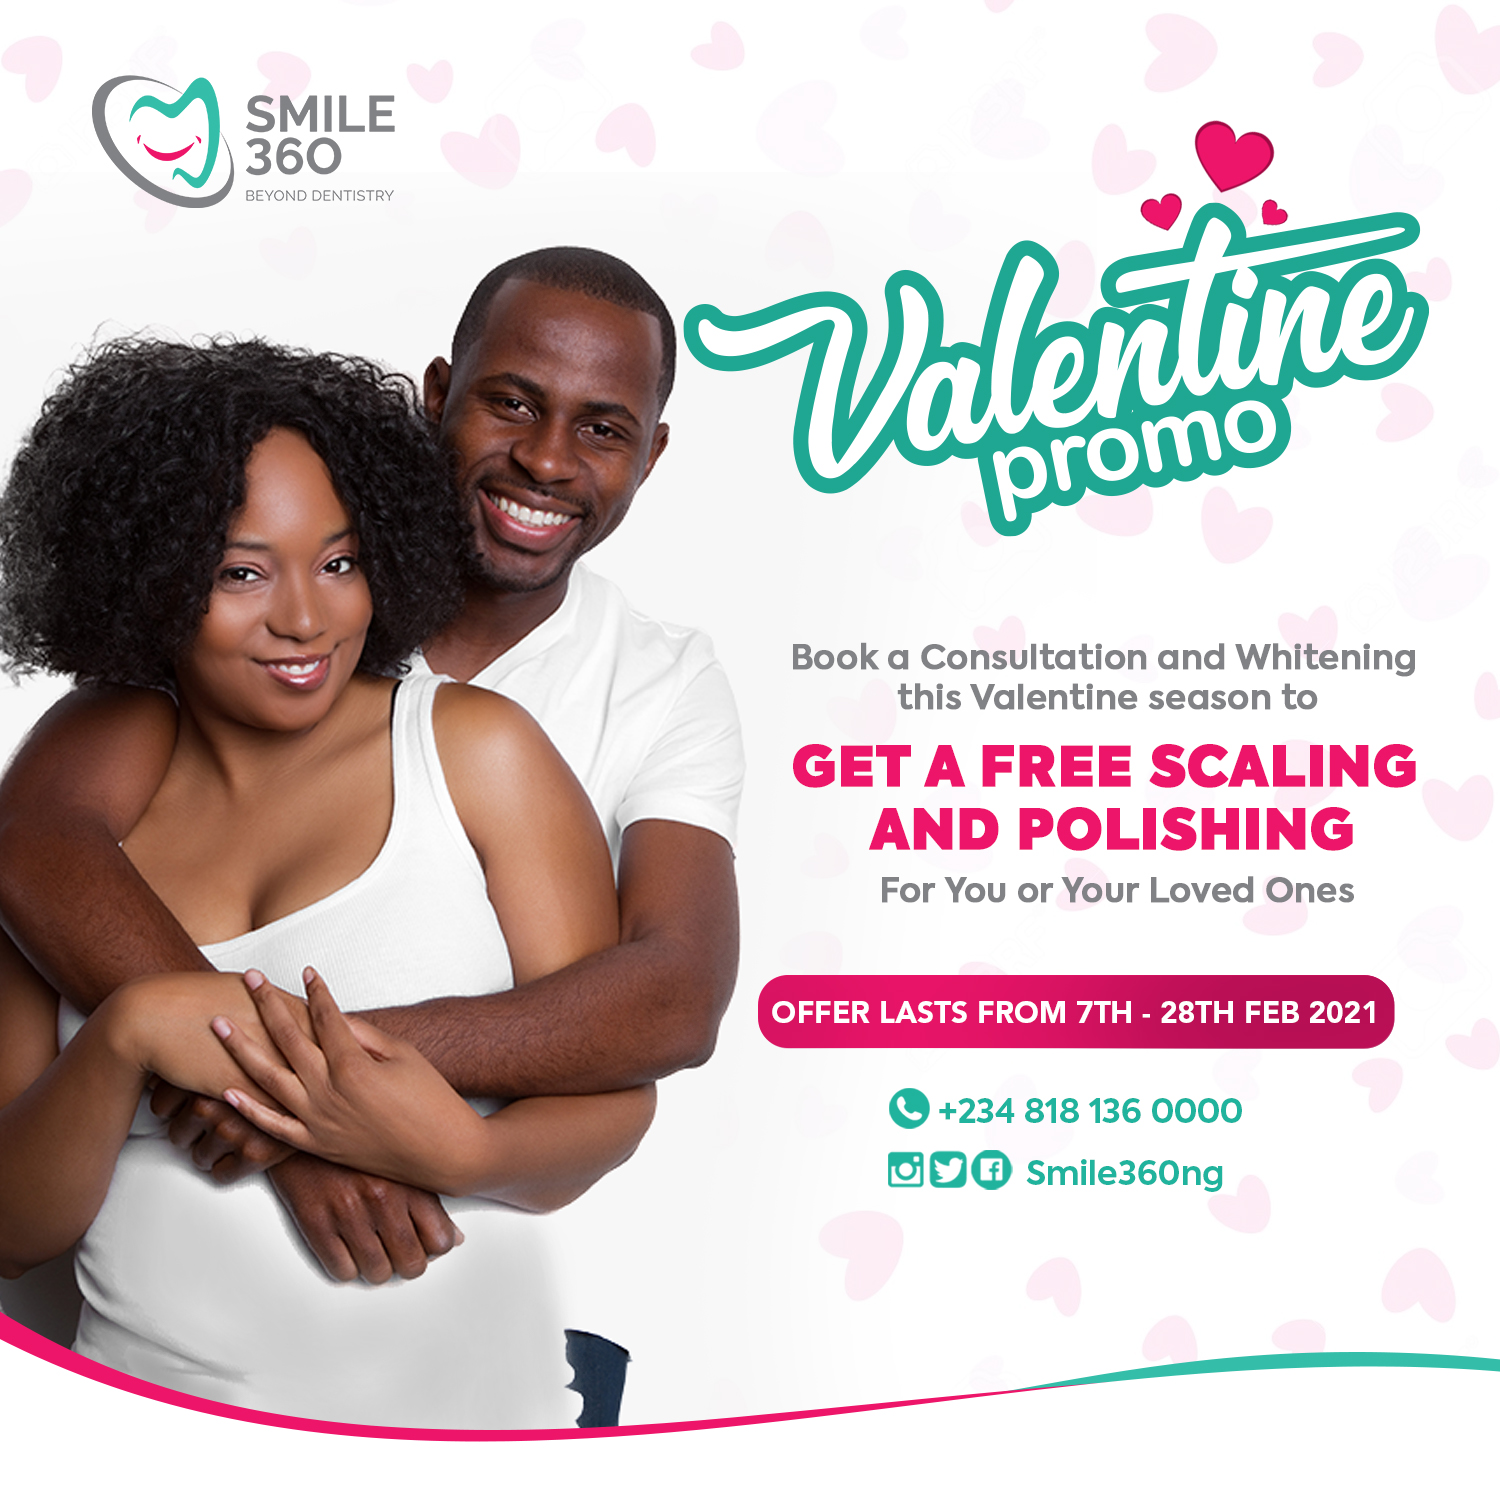 Dental Valentine Offer- Free Scaling and Polishing Procedure.